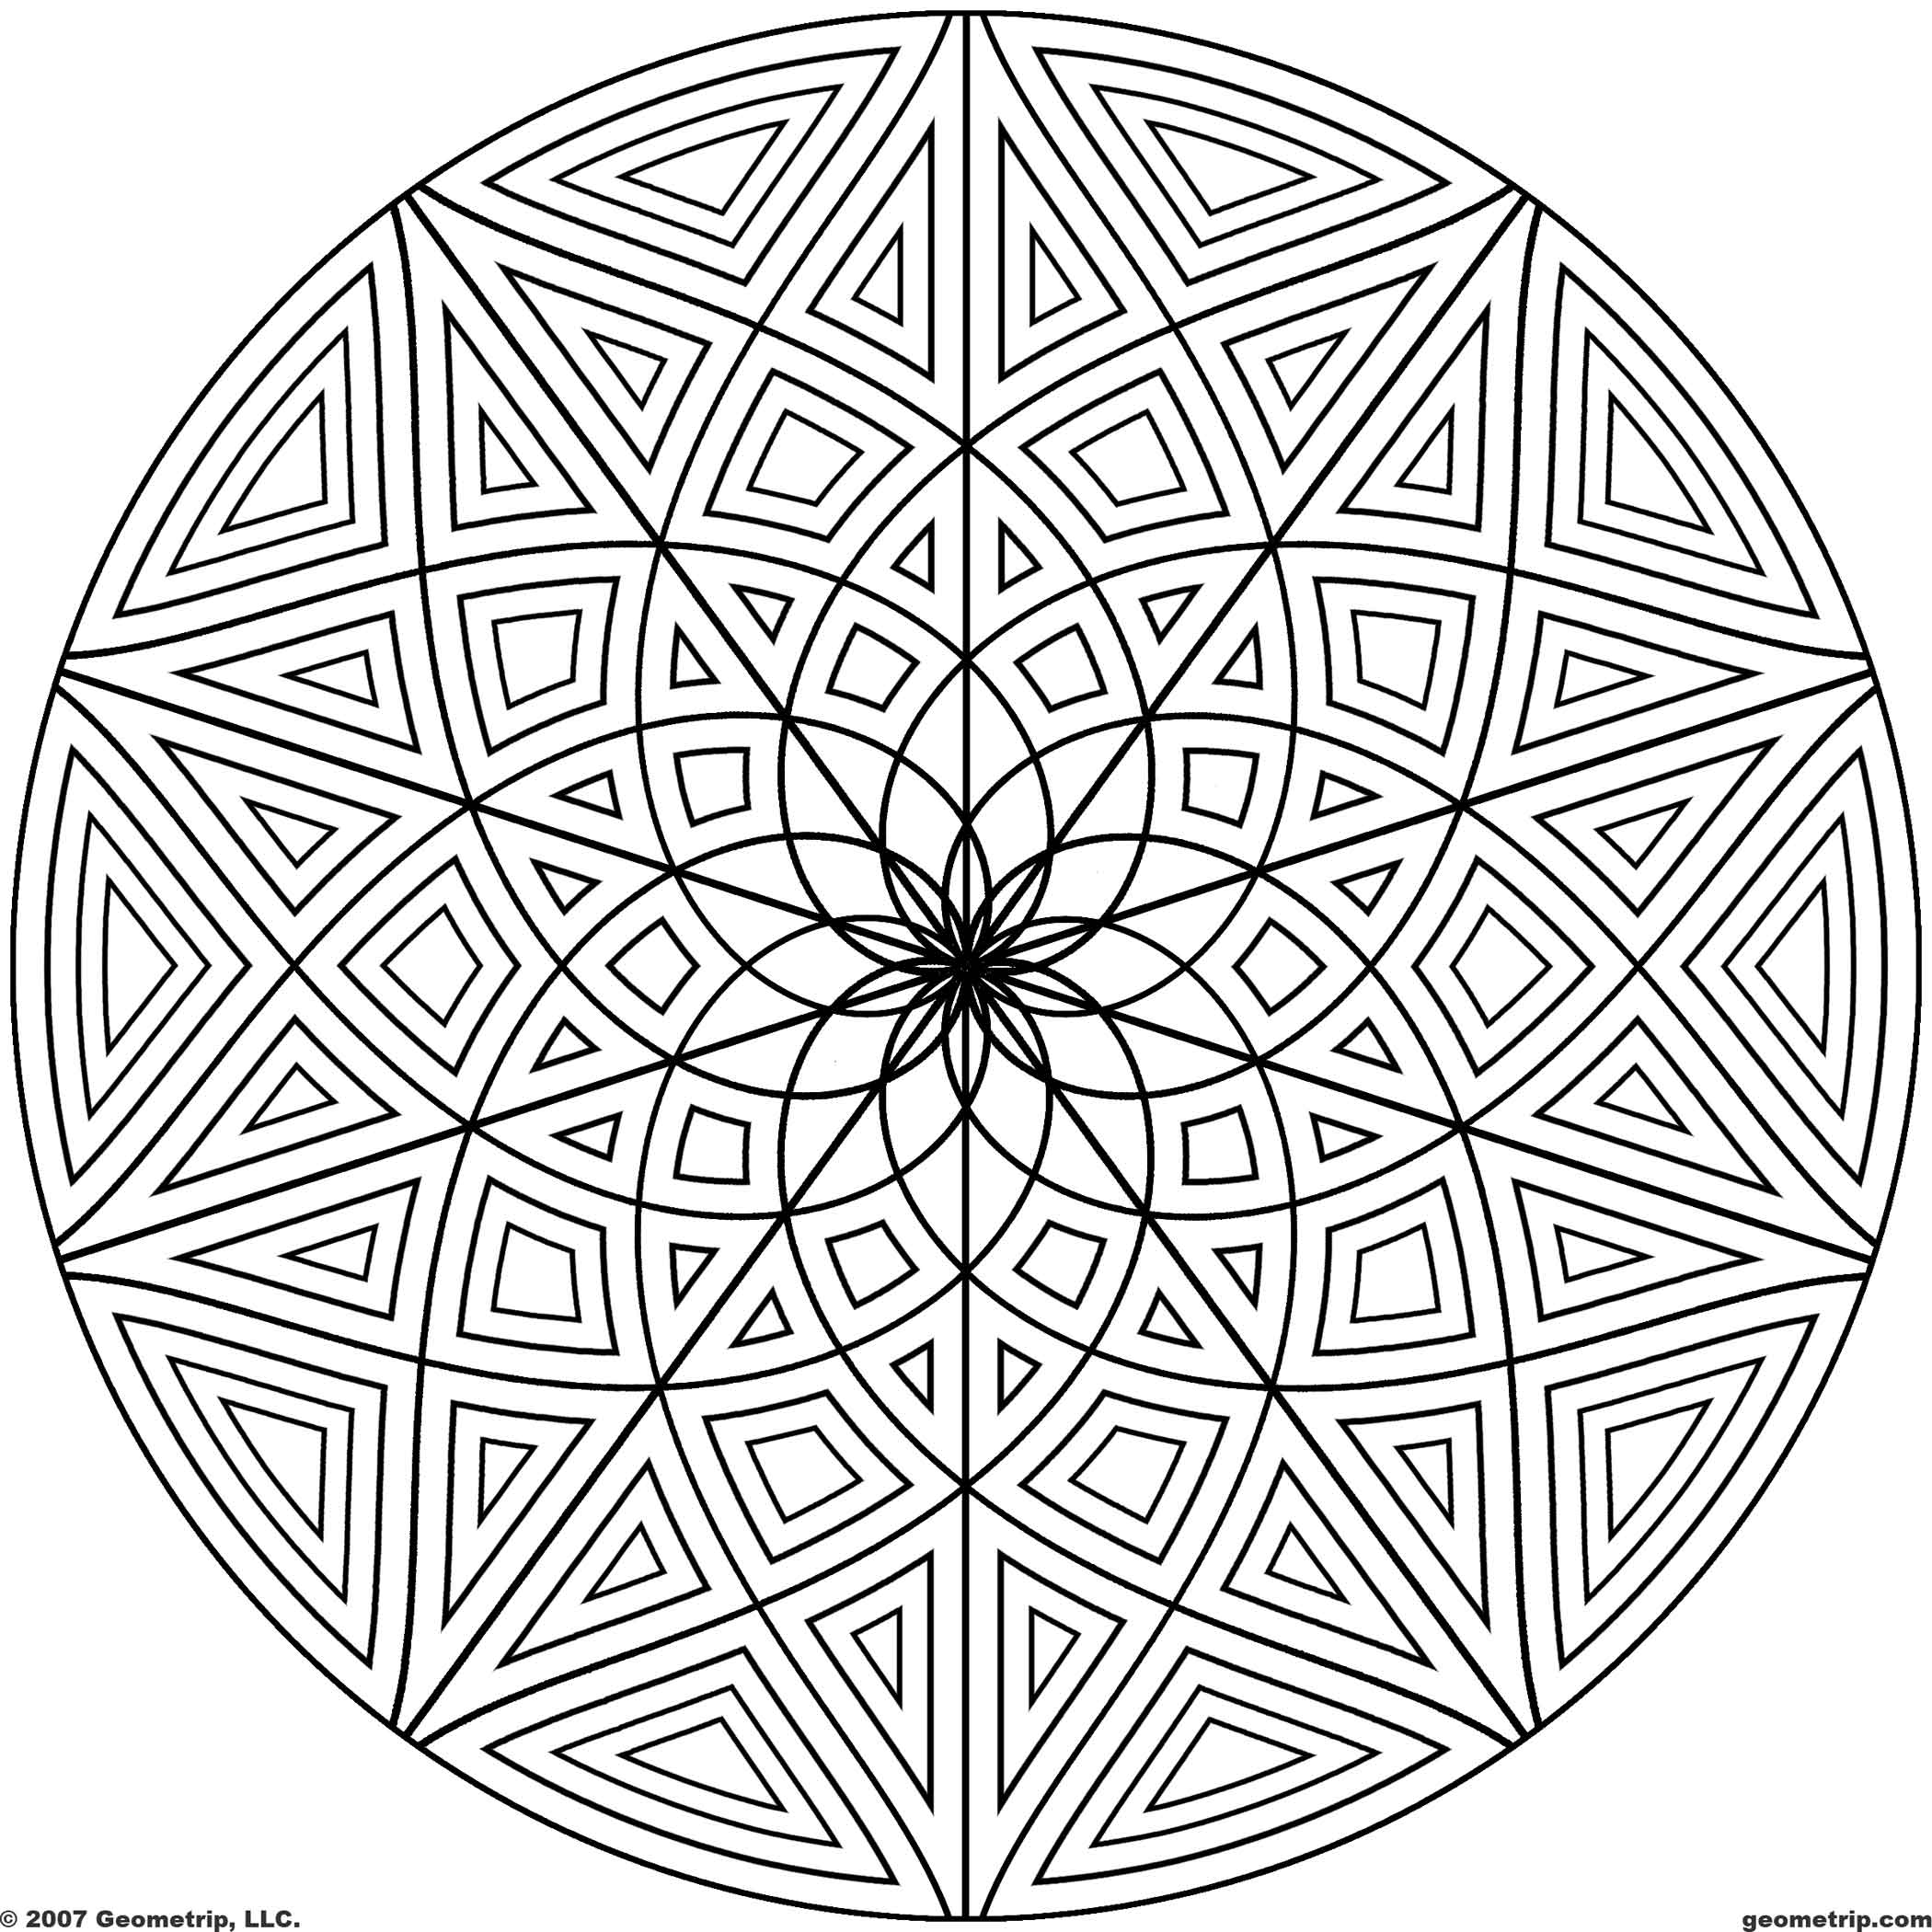 coloring patterns pages free printable geometric coloring pages for adults patterns coloring pages